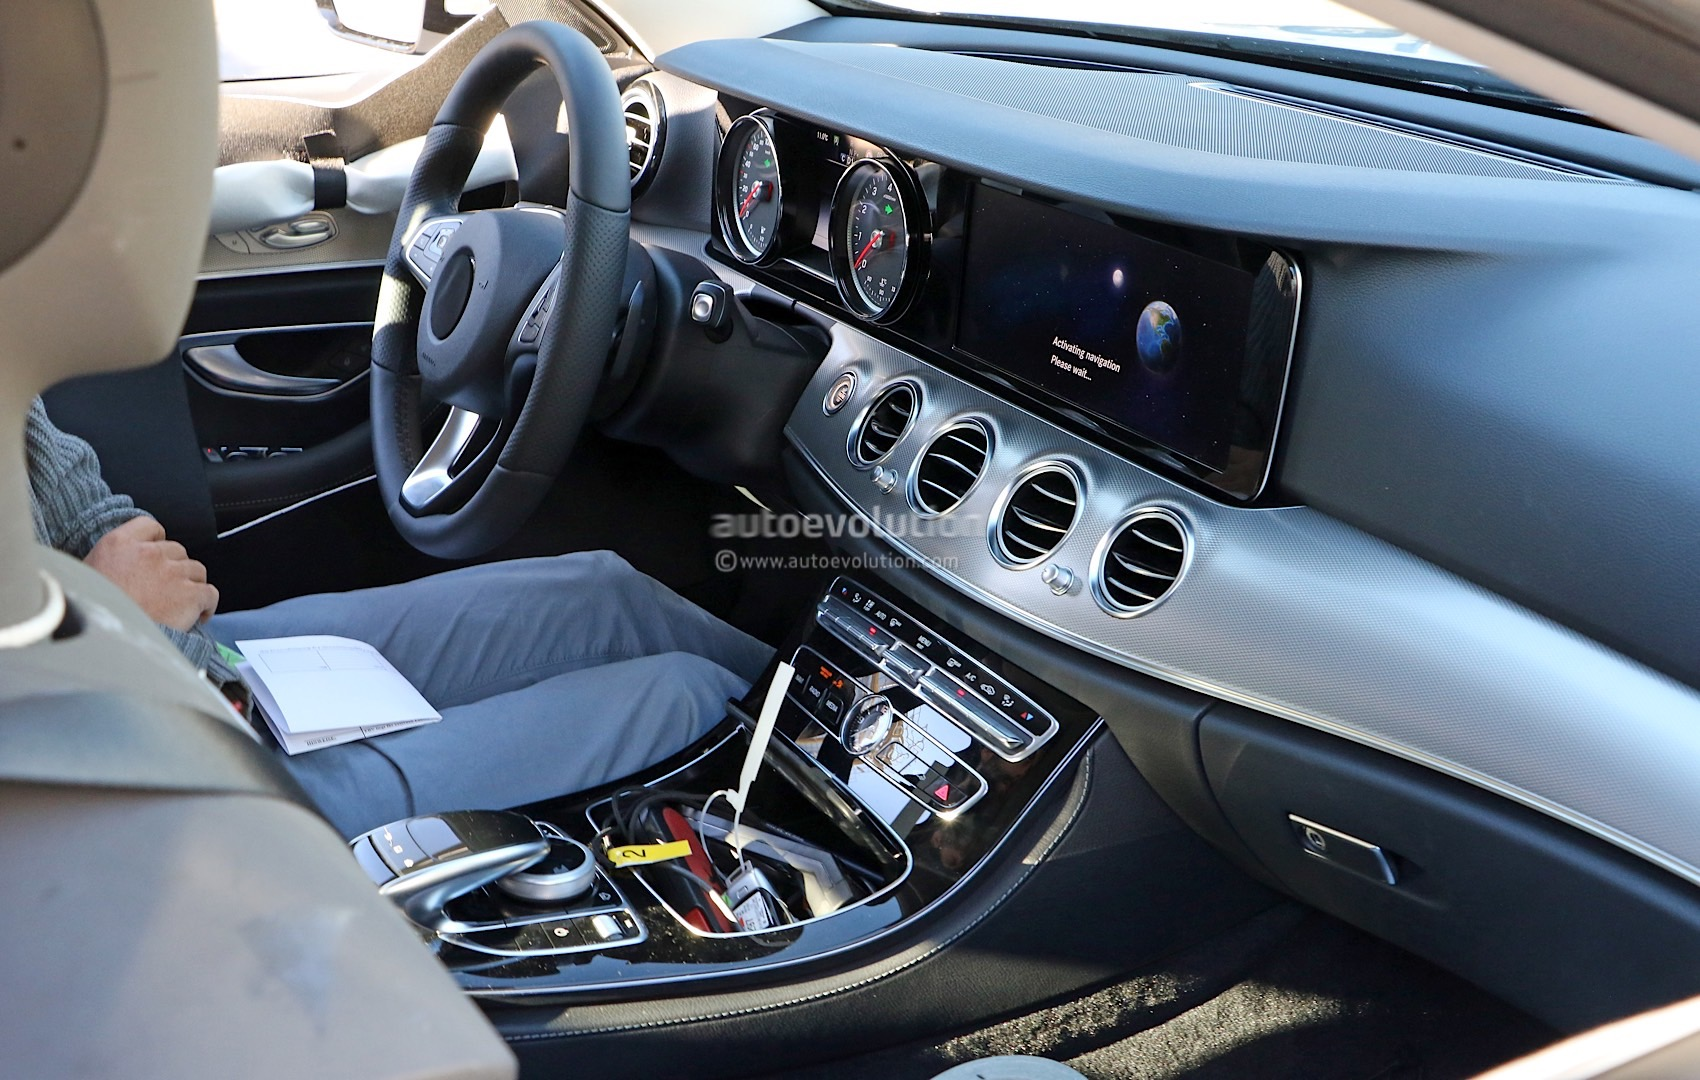 2017 Mercedes-Benz E-Class Interior Revealed in Latest Spyshots ...